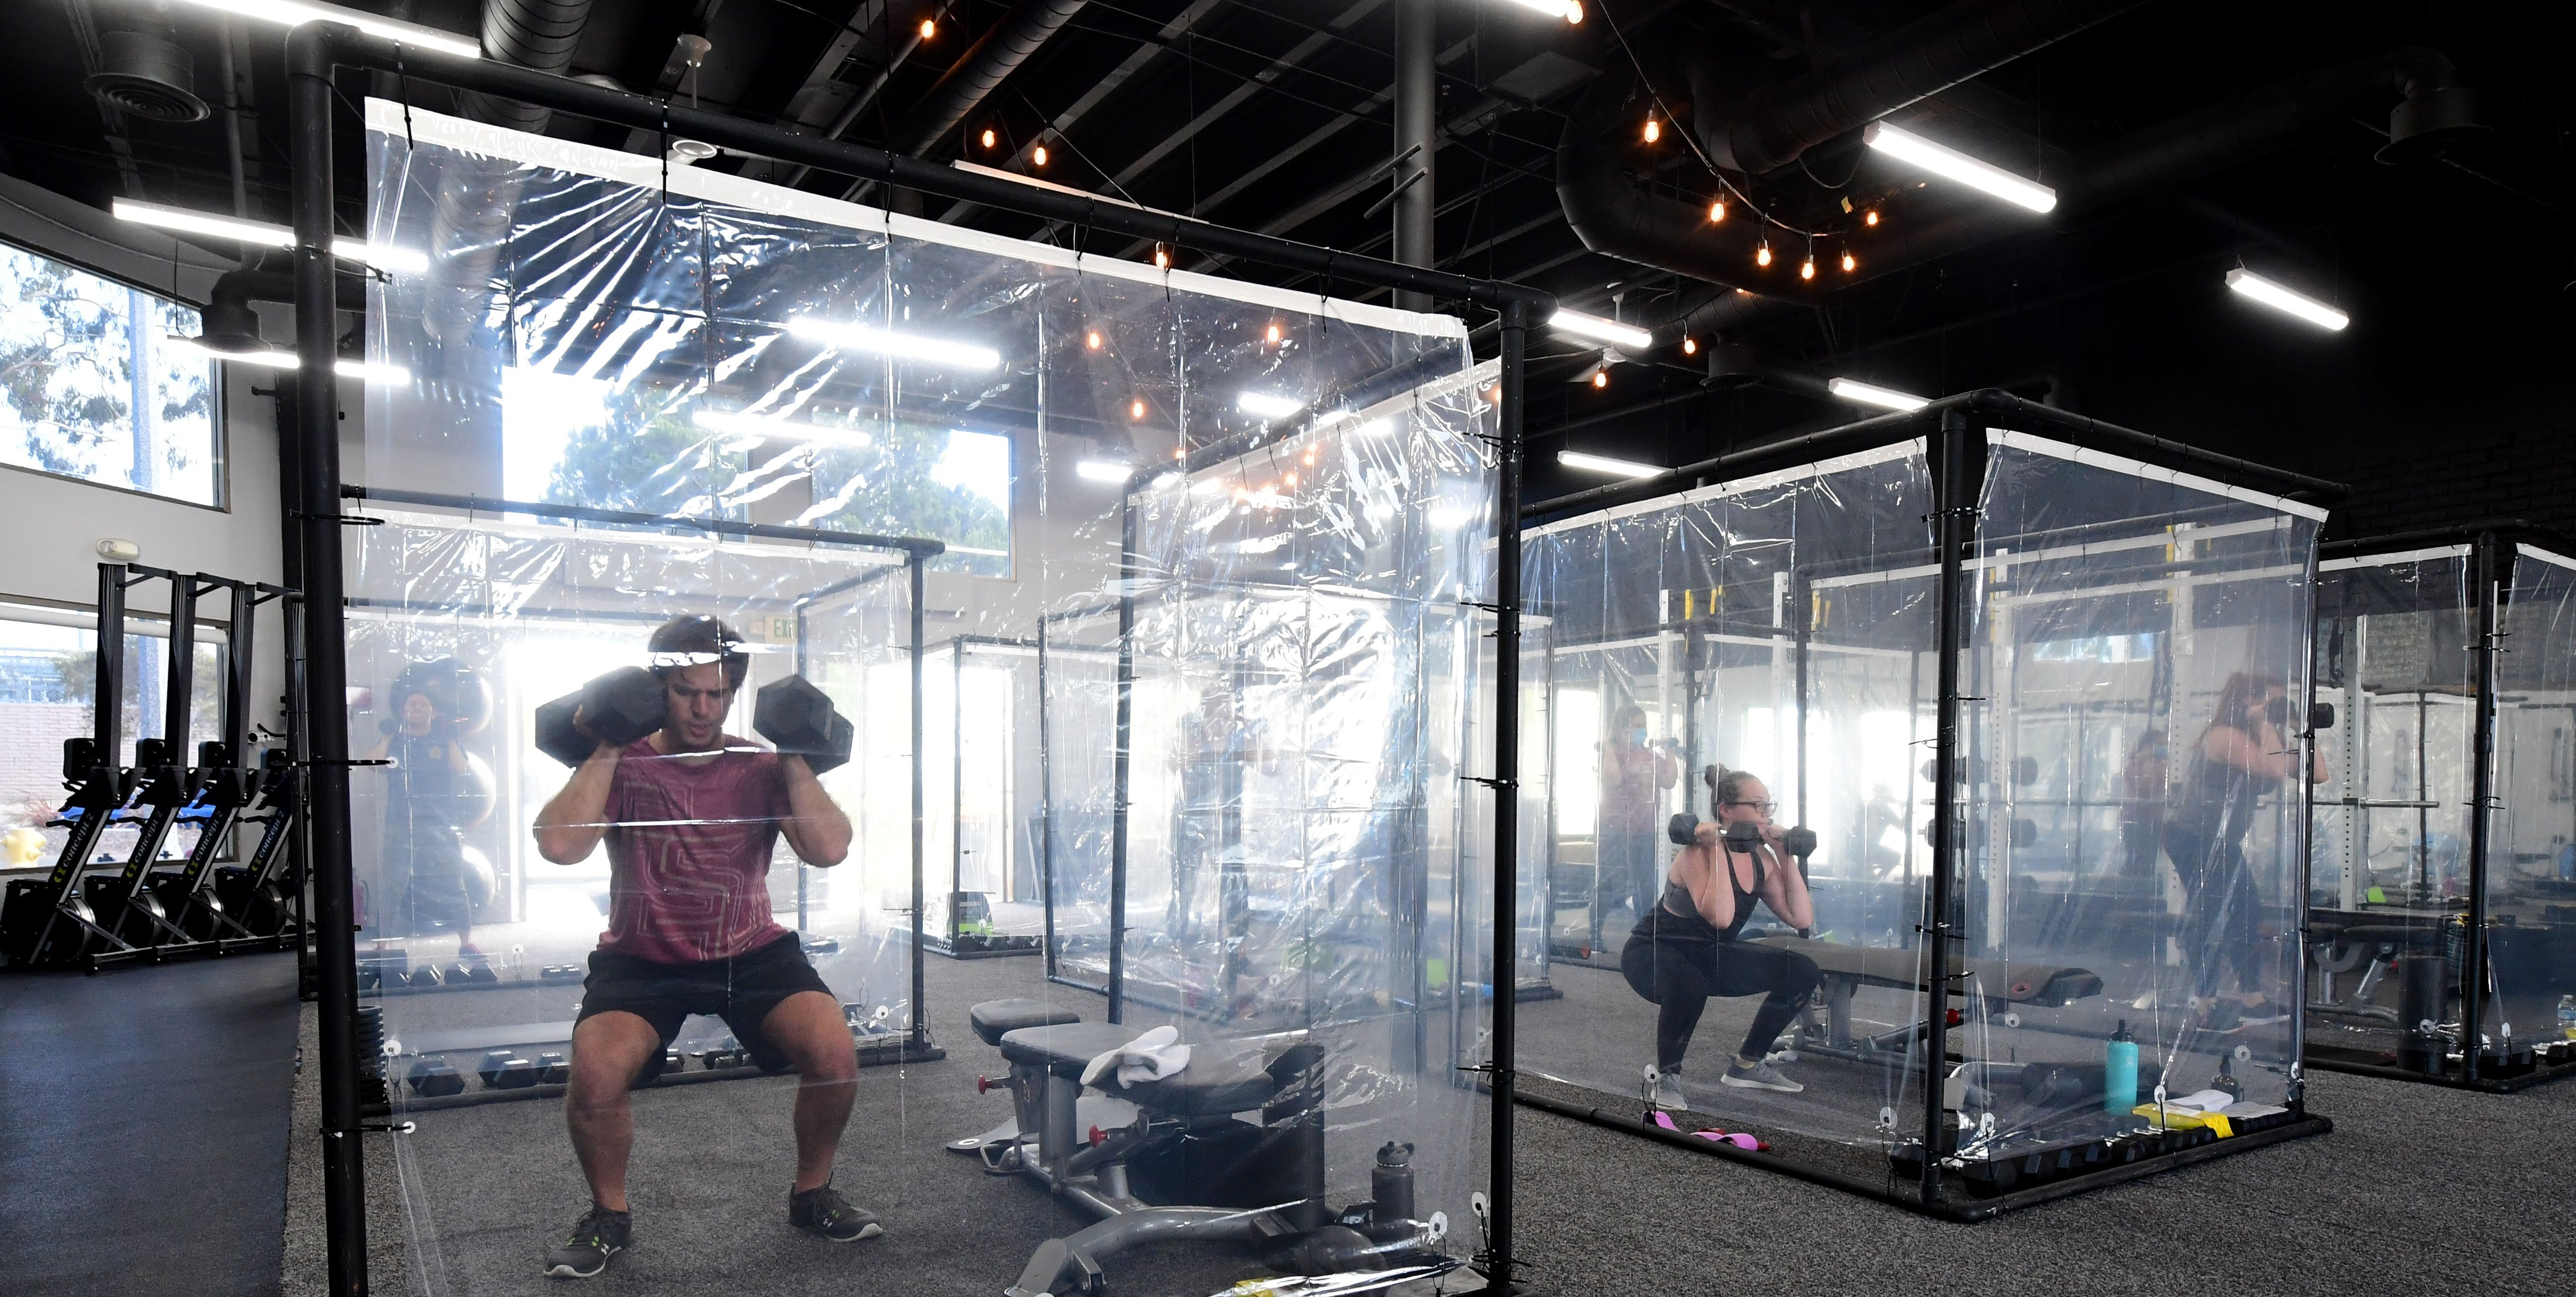 California Gym Uses Personal Pods for Classes After Coronavirus